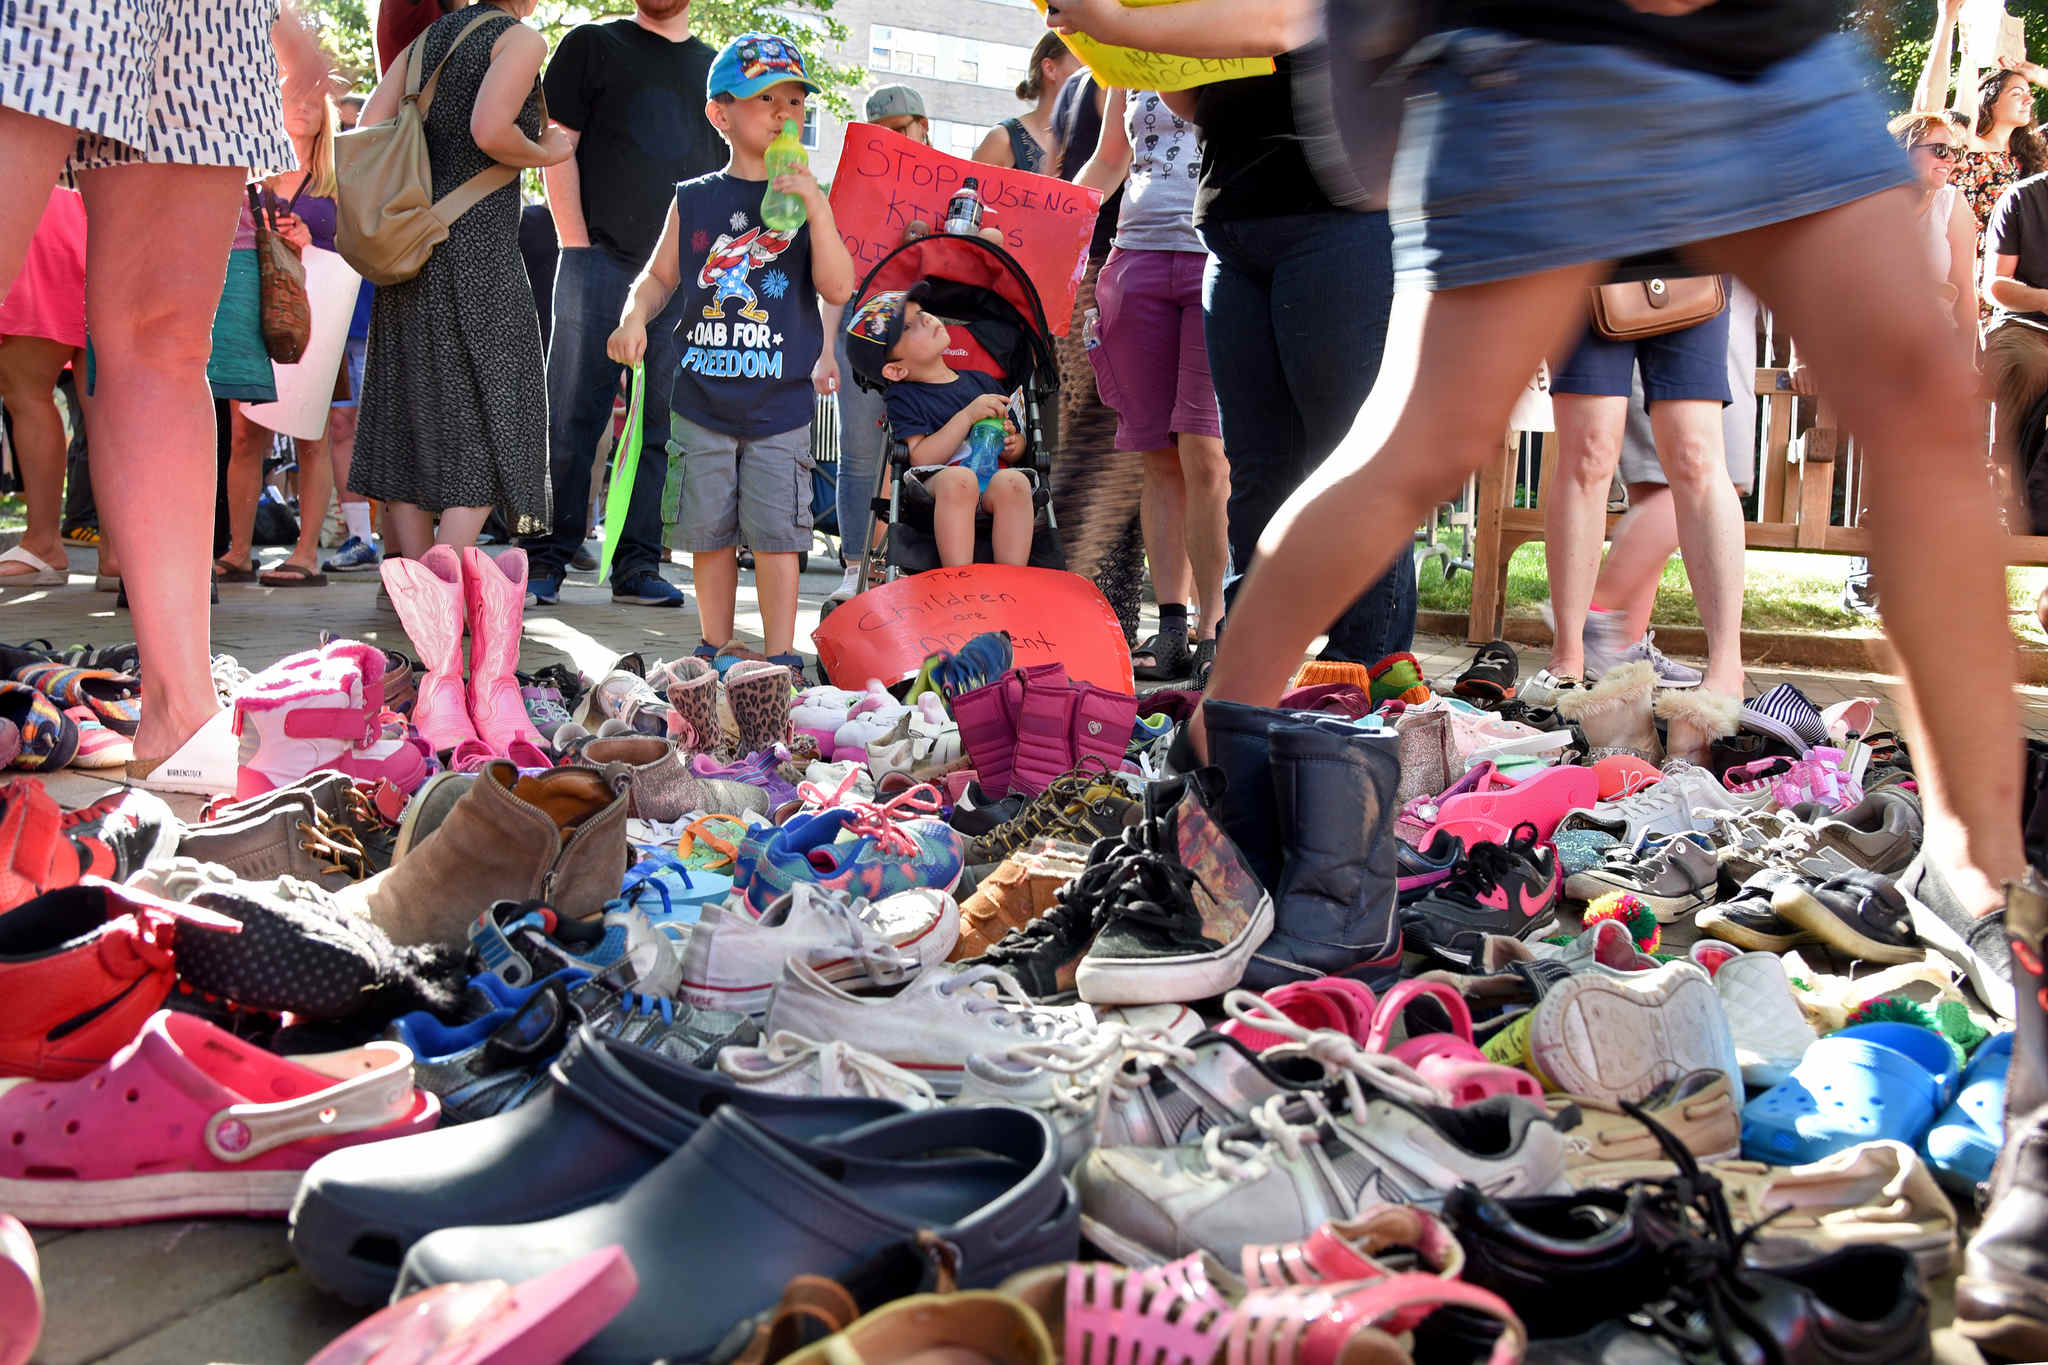 Ethan Schiller (left), 4, and his brother Lukas, 2-1/2, look over the dozens of shoes representing children who were separated from their parents by immigration officials, part of a protest at Rittenhouse Square on Tuesday, near the hotel hosting a GOP fundraiser with Vice President Pence.